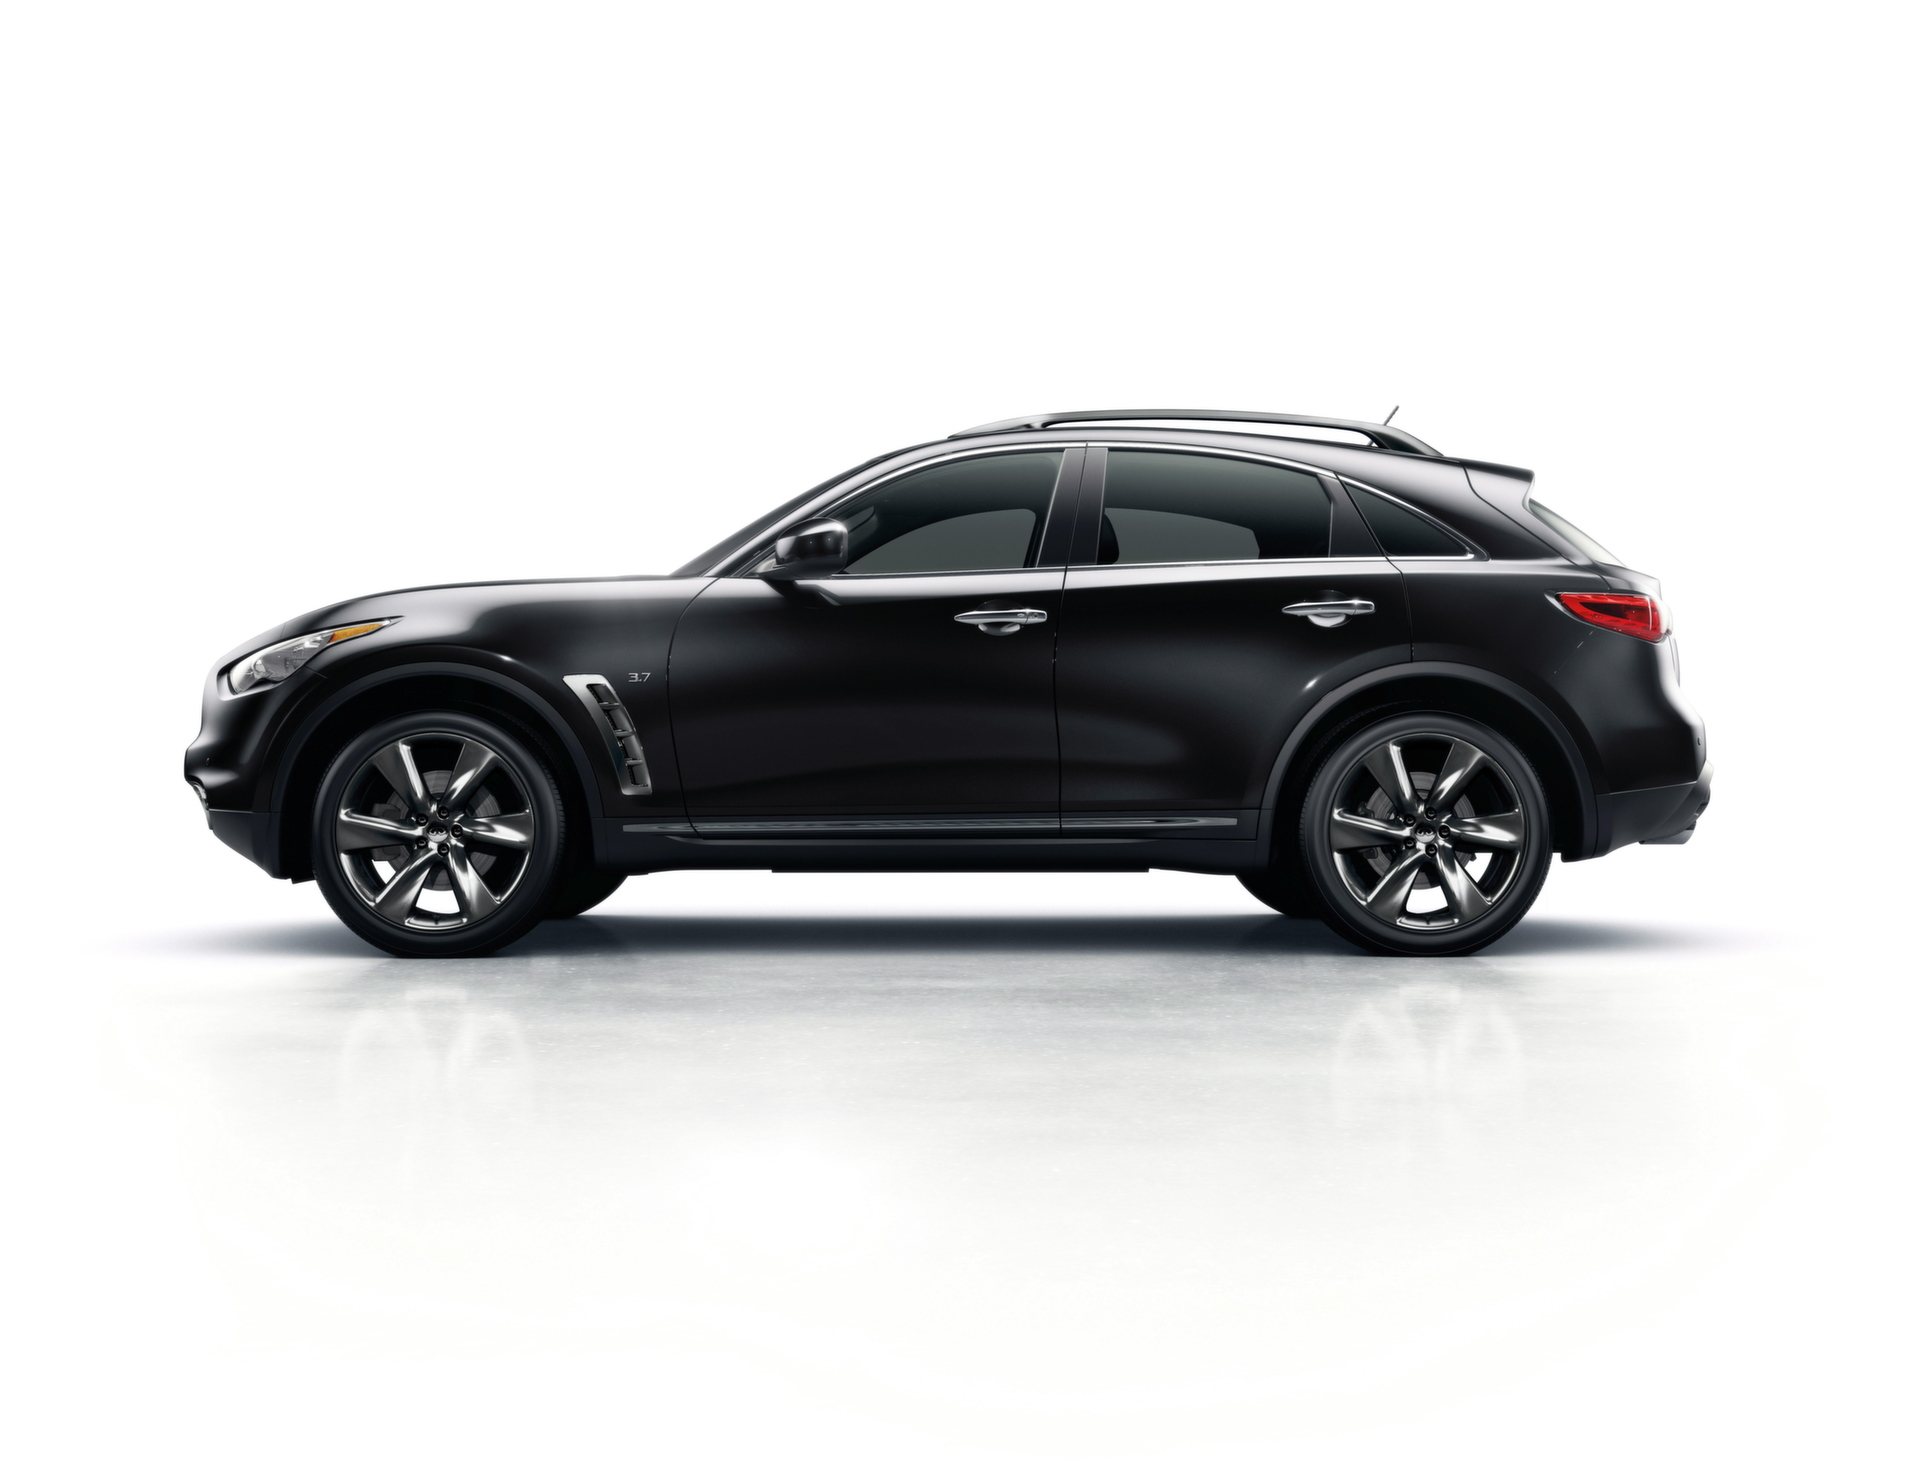 2017 Infiniti Qx70 Review Ratings Specs Prices And Photos The Car Connection